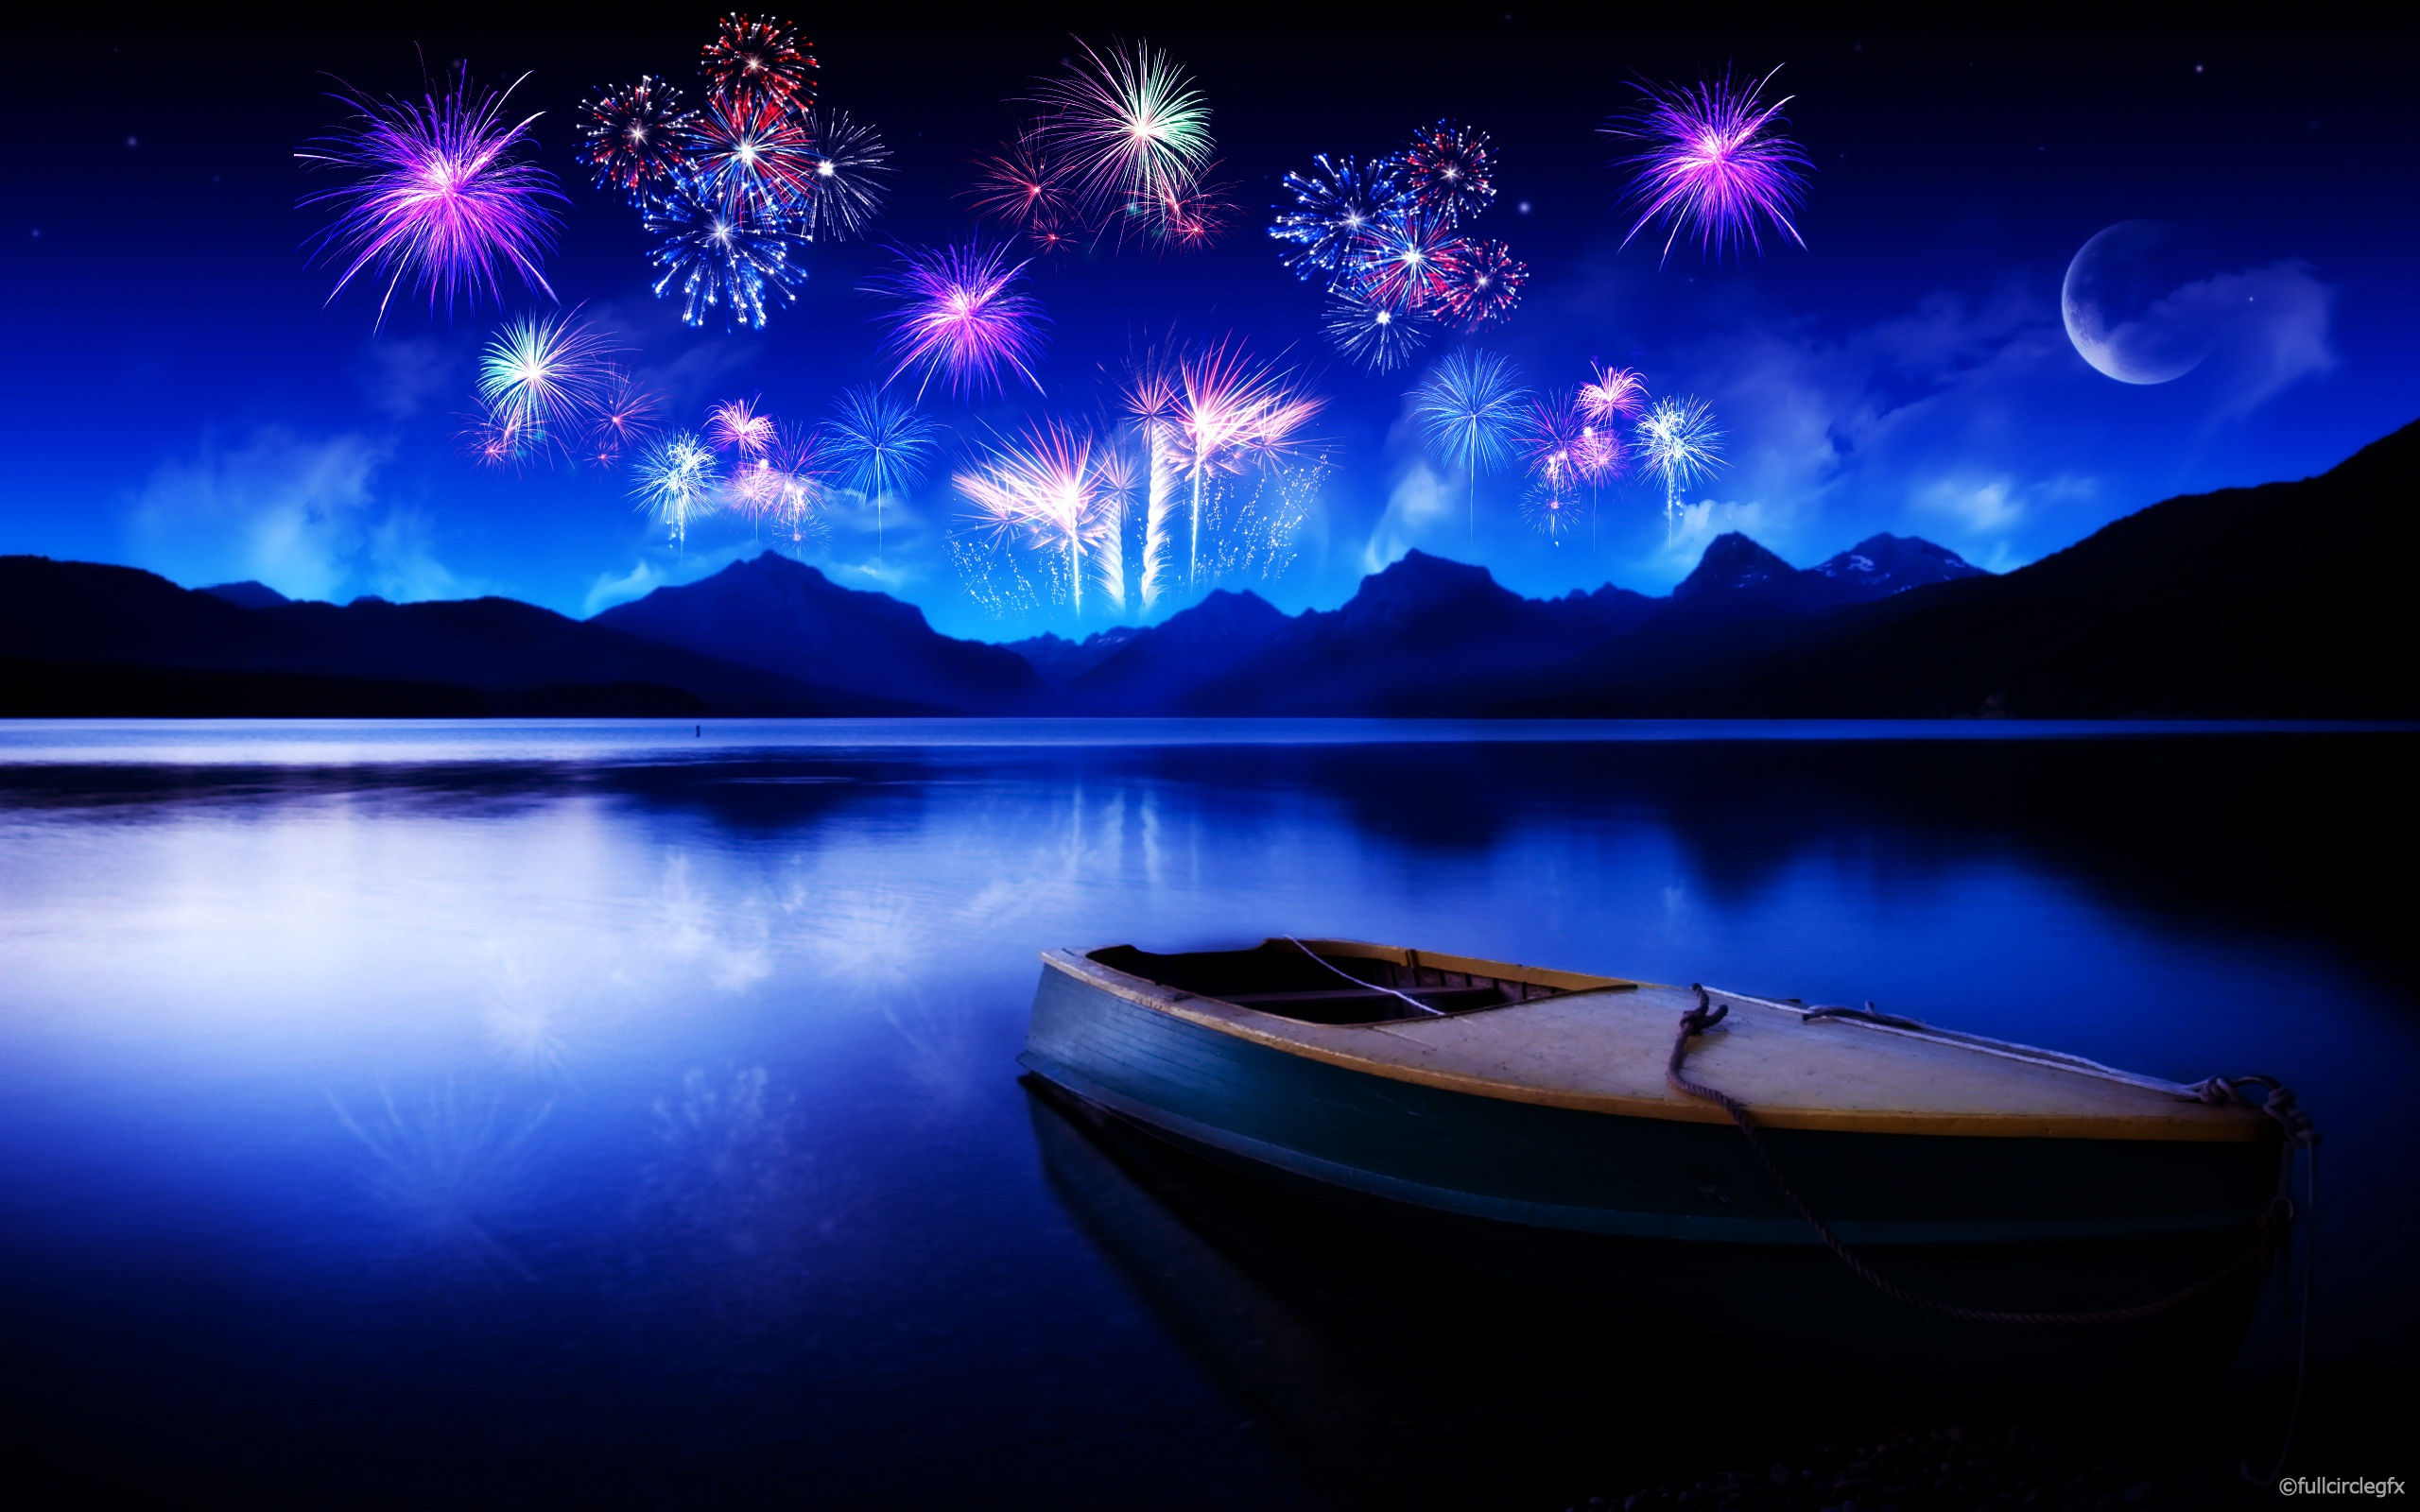 Celebrating New Year A Small Boat